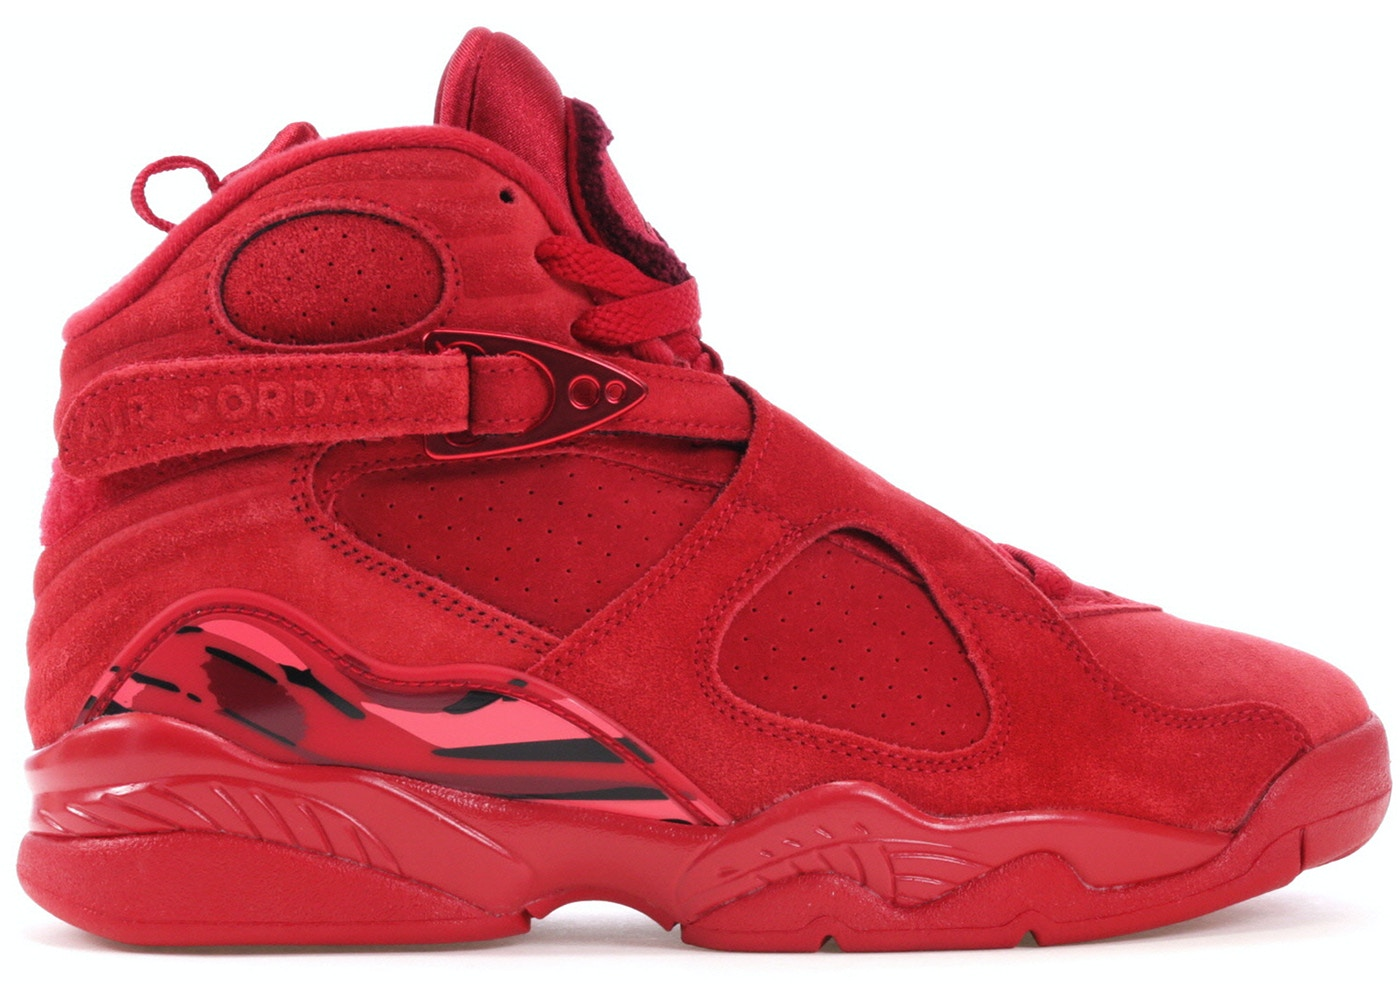 16a72cec7403d5 Buy Air Jordan 8 Shoes   Deadstock Sneakers